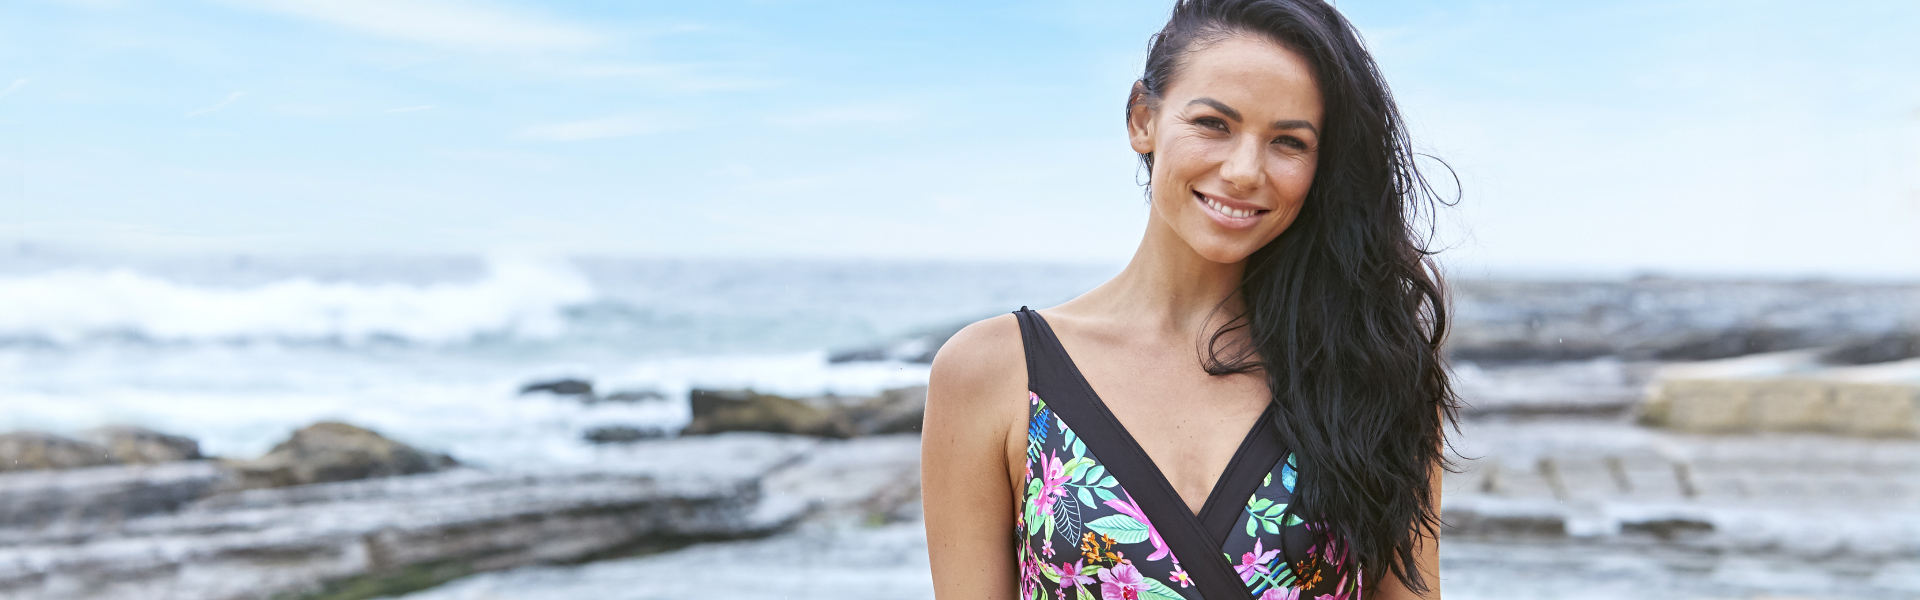 The essential guide to swimwear back styles.